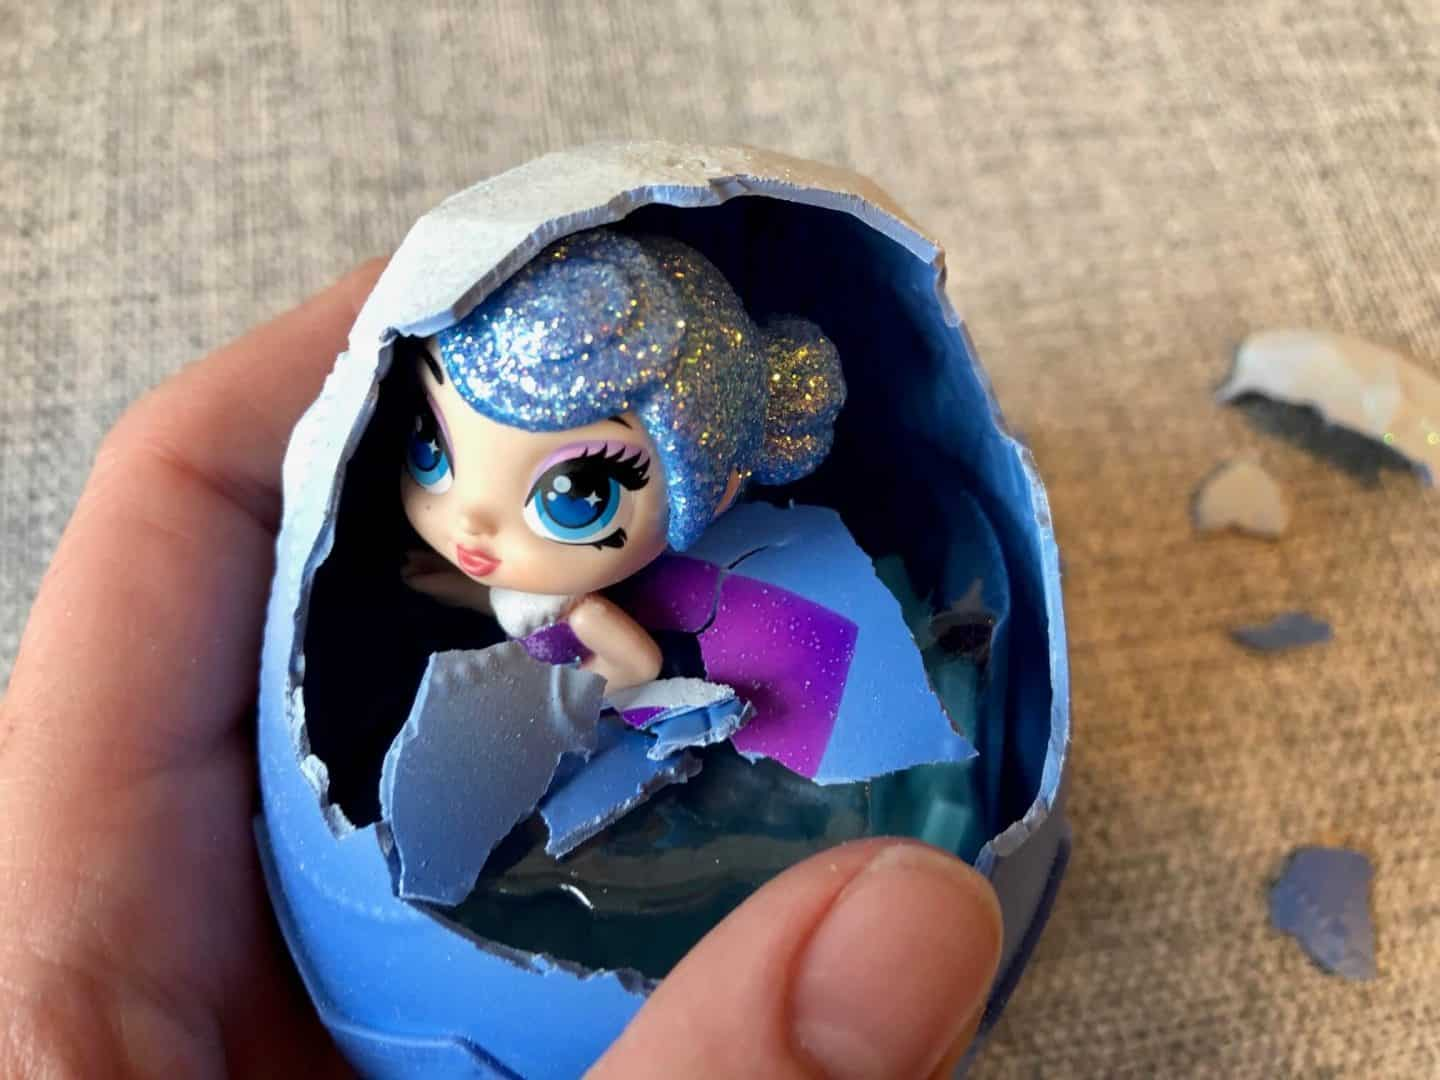 Hatching a Pixie Hatchimal